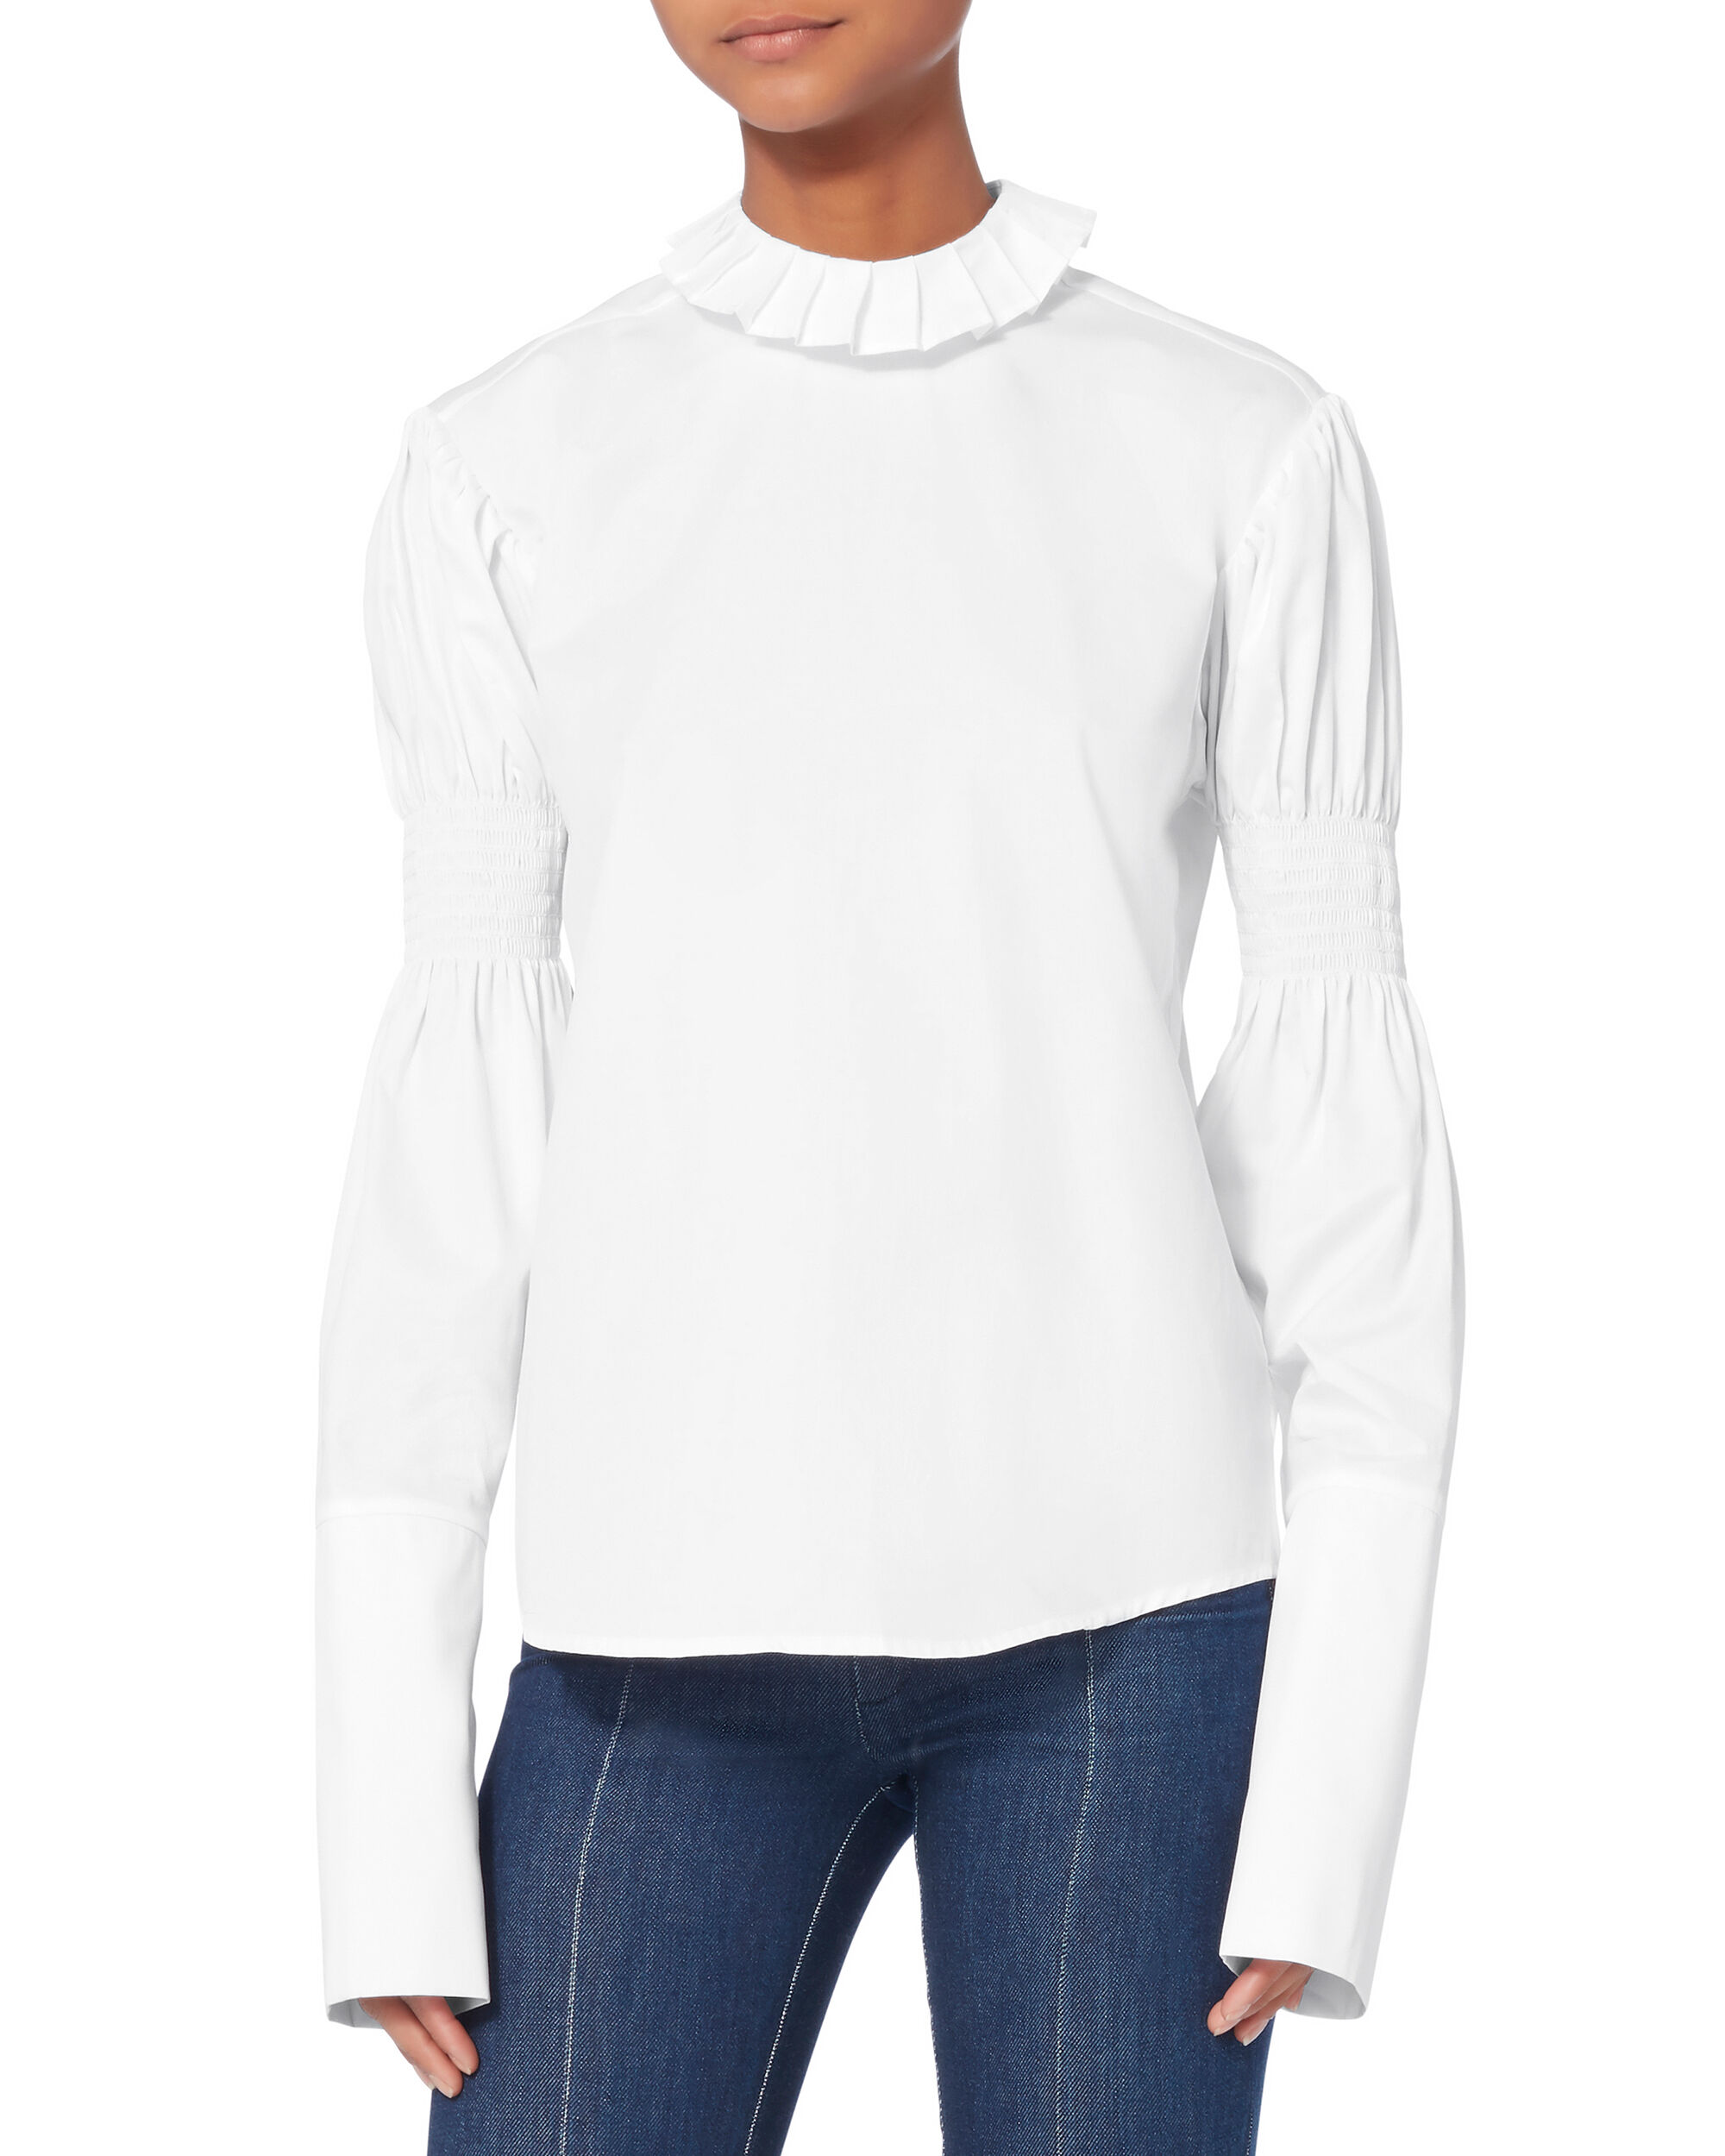 Brave Ruffle High Neck Shirt, WHITE, hi-res